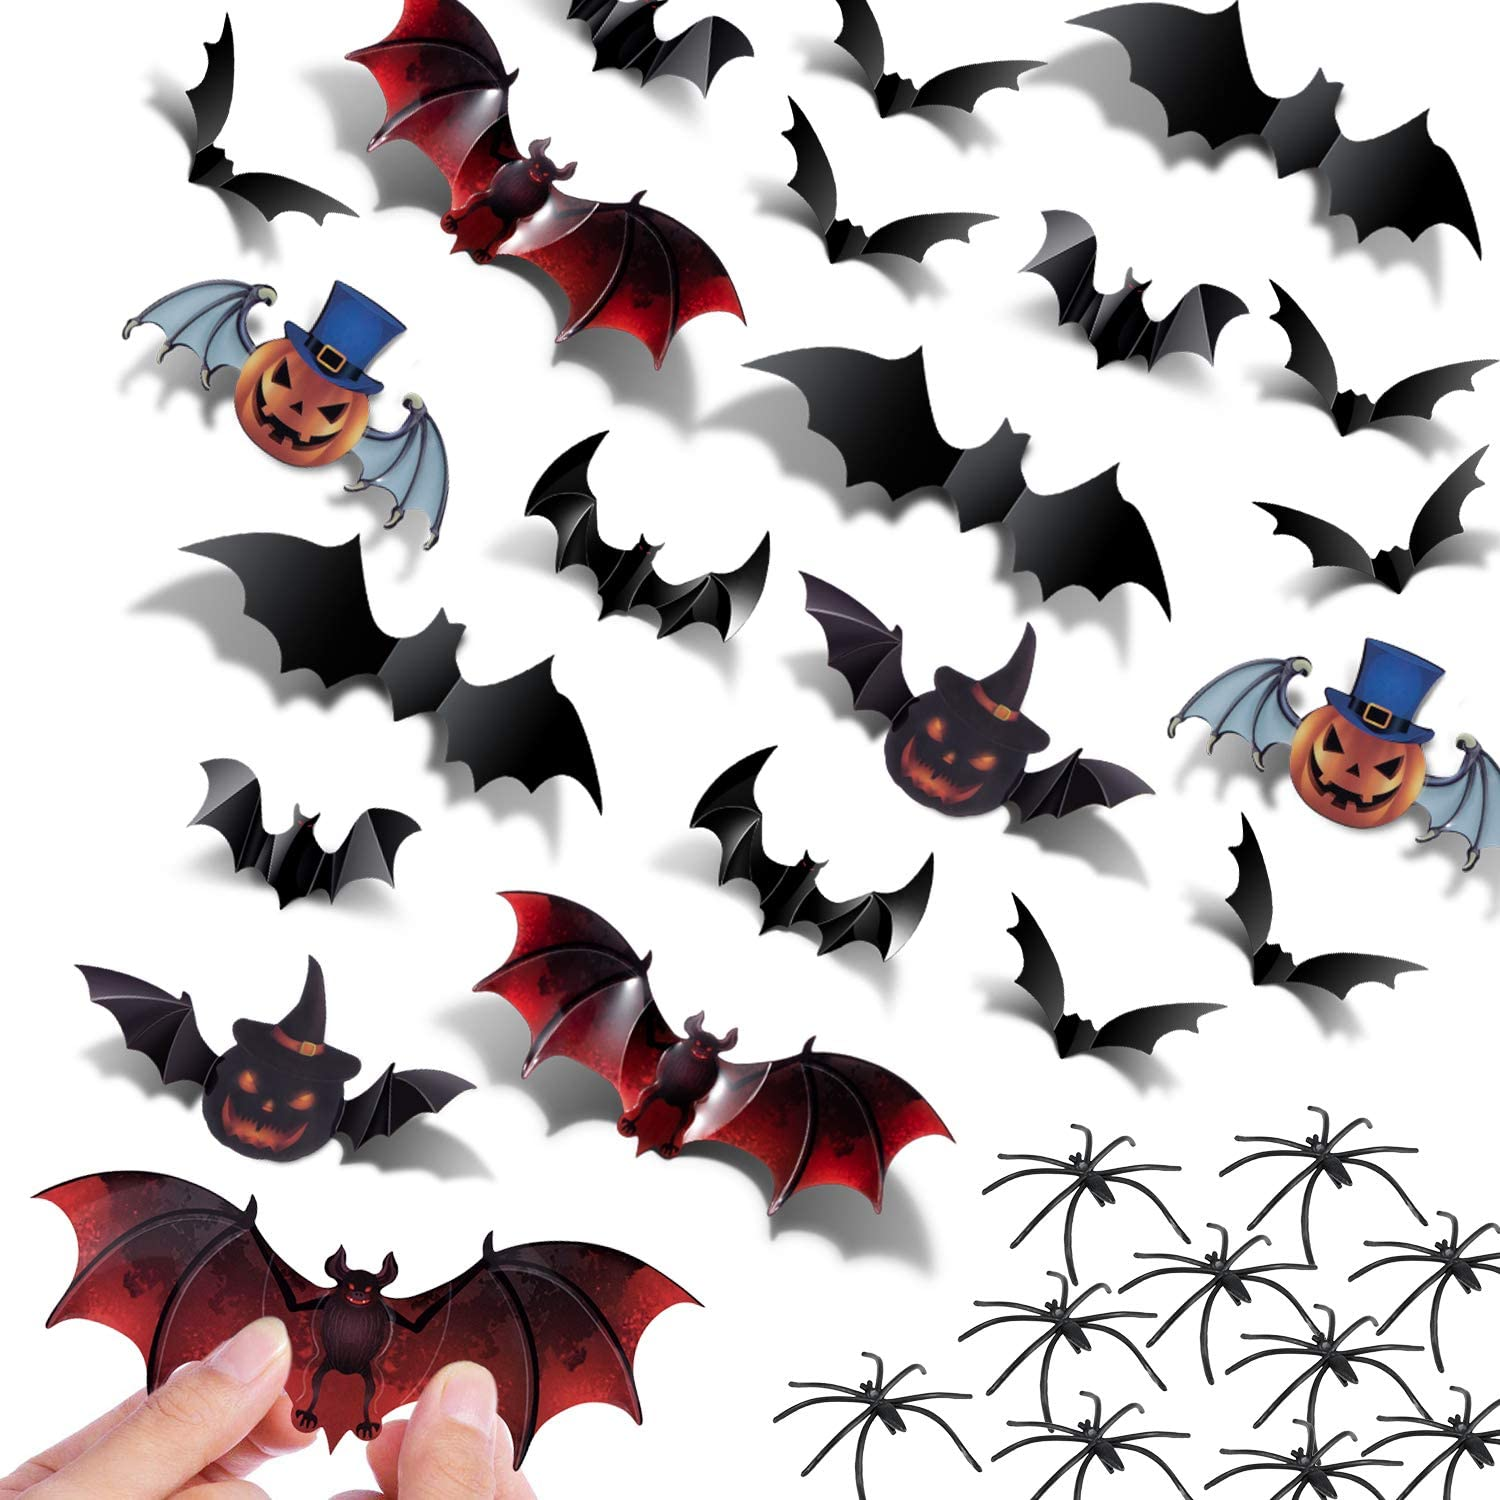 Halloween Bats Decorations Party Supplies - 120PCS 3D Bats Wall Decals Stickers 60PCS Halloween Spooky Spiders Scary Party Favors for Home Office Window Halloween Decorations